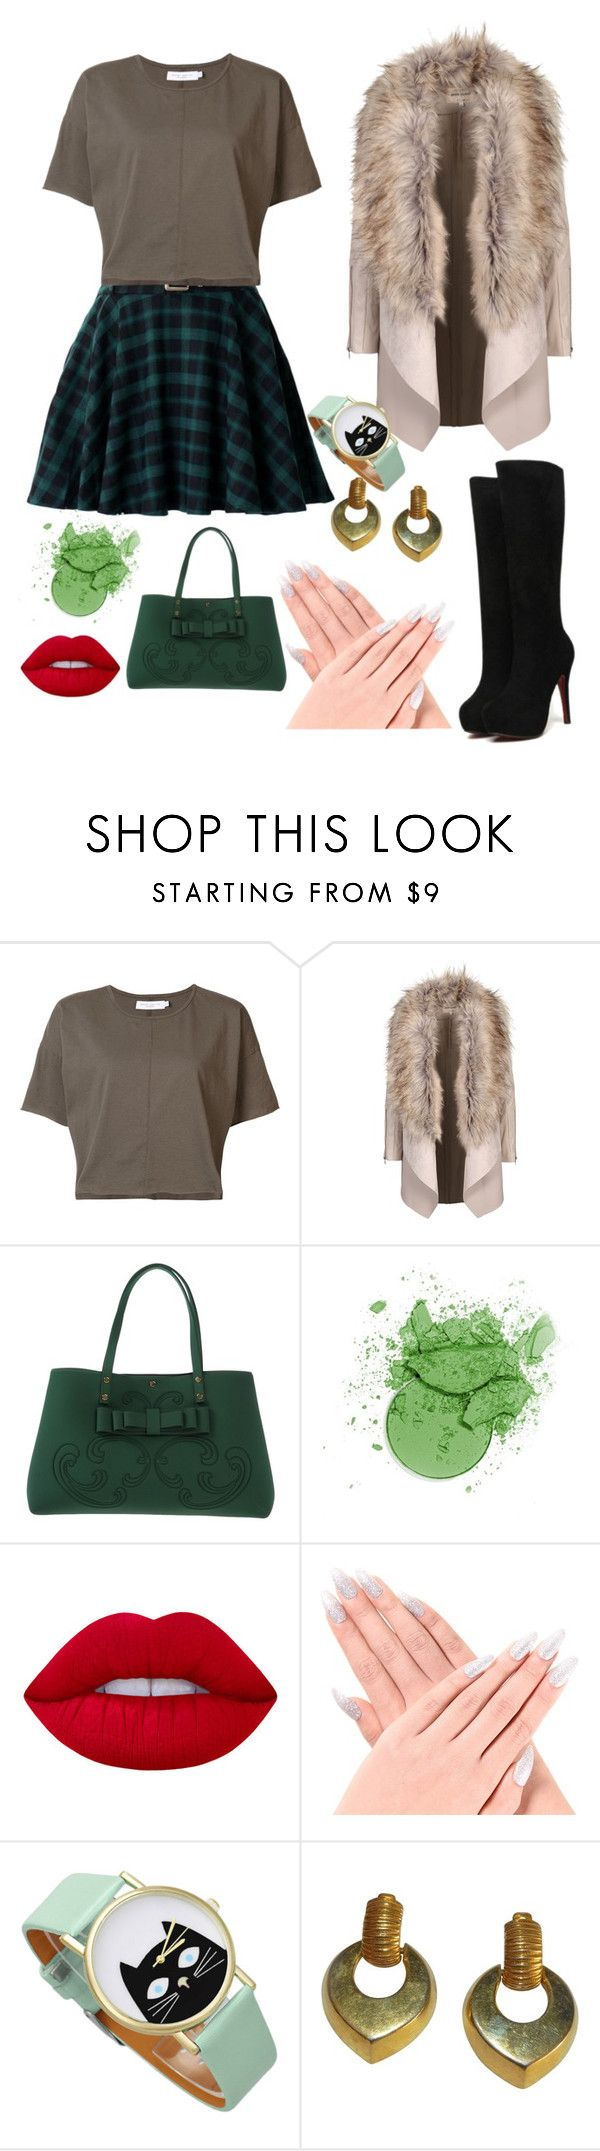 """""""The casual plaid"""" by b002 ❤ liked on Polyvore featuring daniel patrick, La Fille Des Fleurs, Lime Crime and Givenchy"""